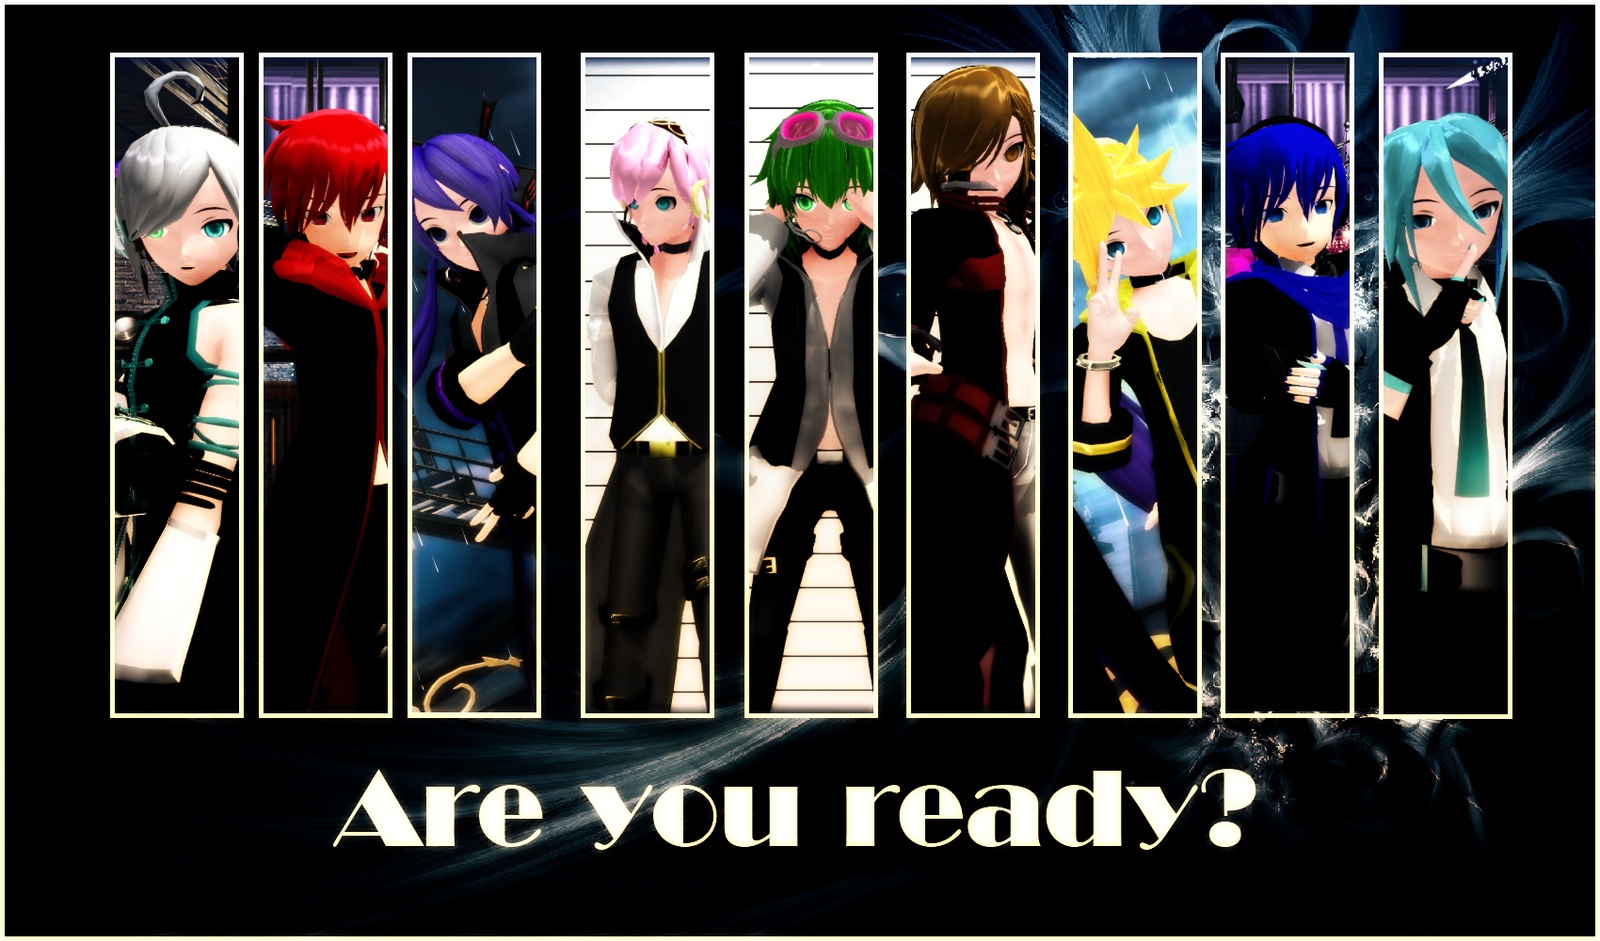 Are you ready? by oOIchibiOo